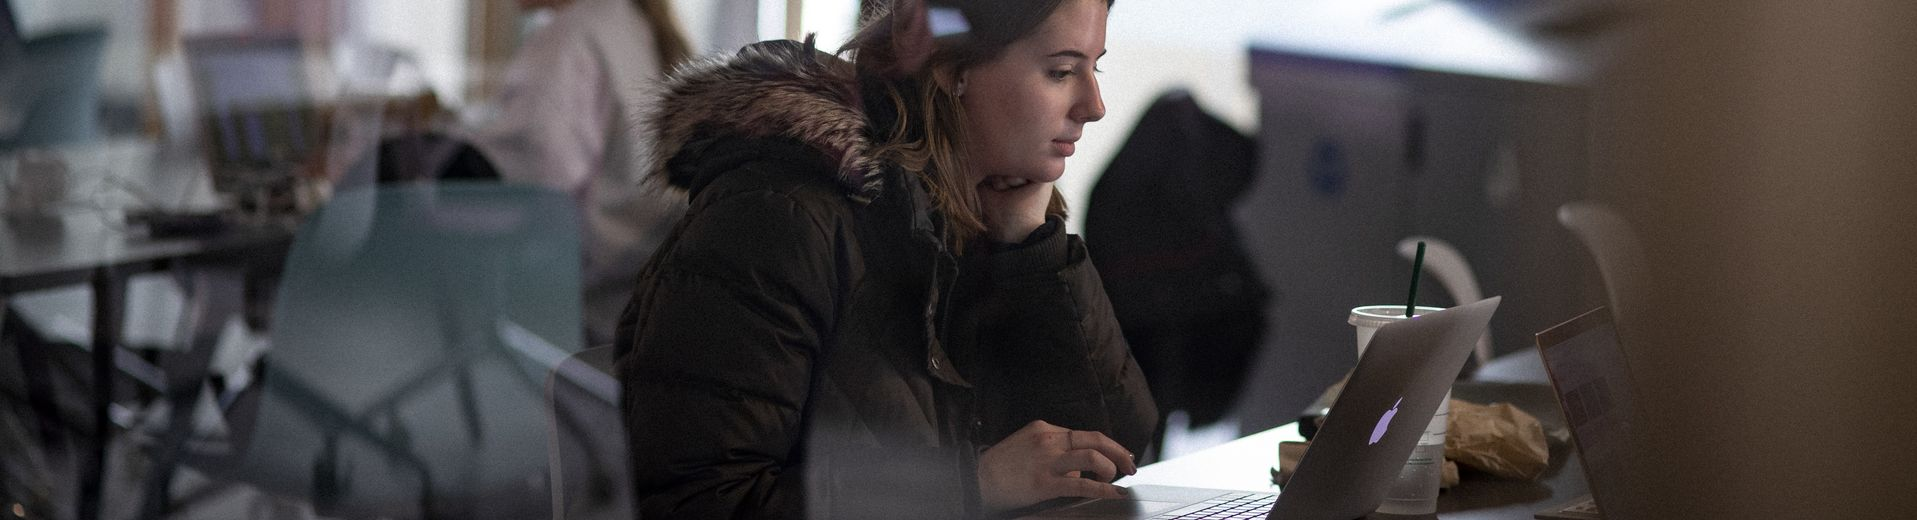 A girl sitting in front a computer doing school work.